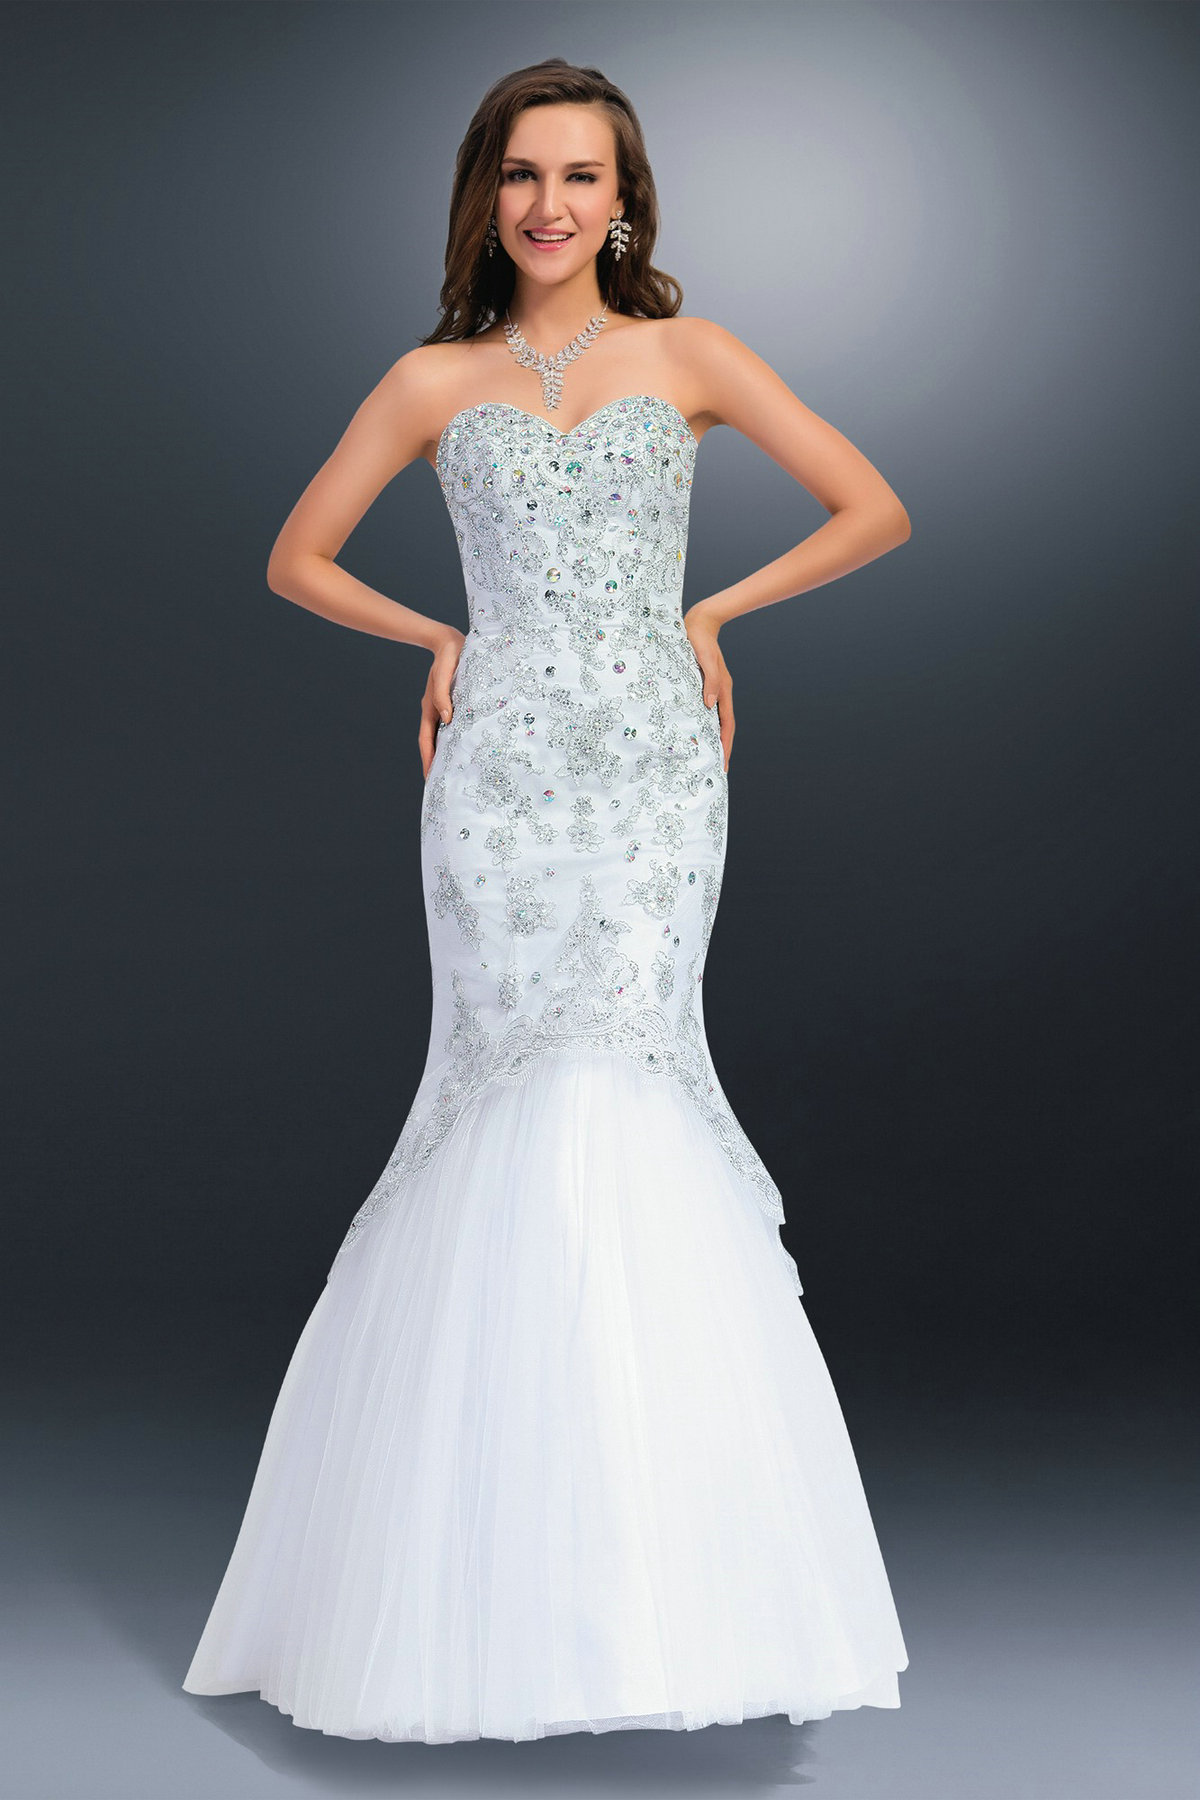 20 Beautiful White Prom Dresses Magment